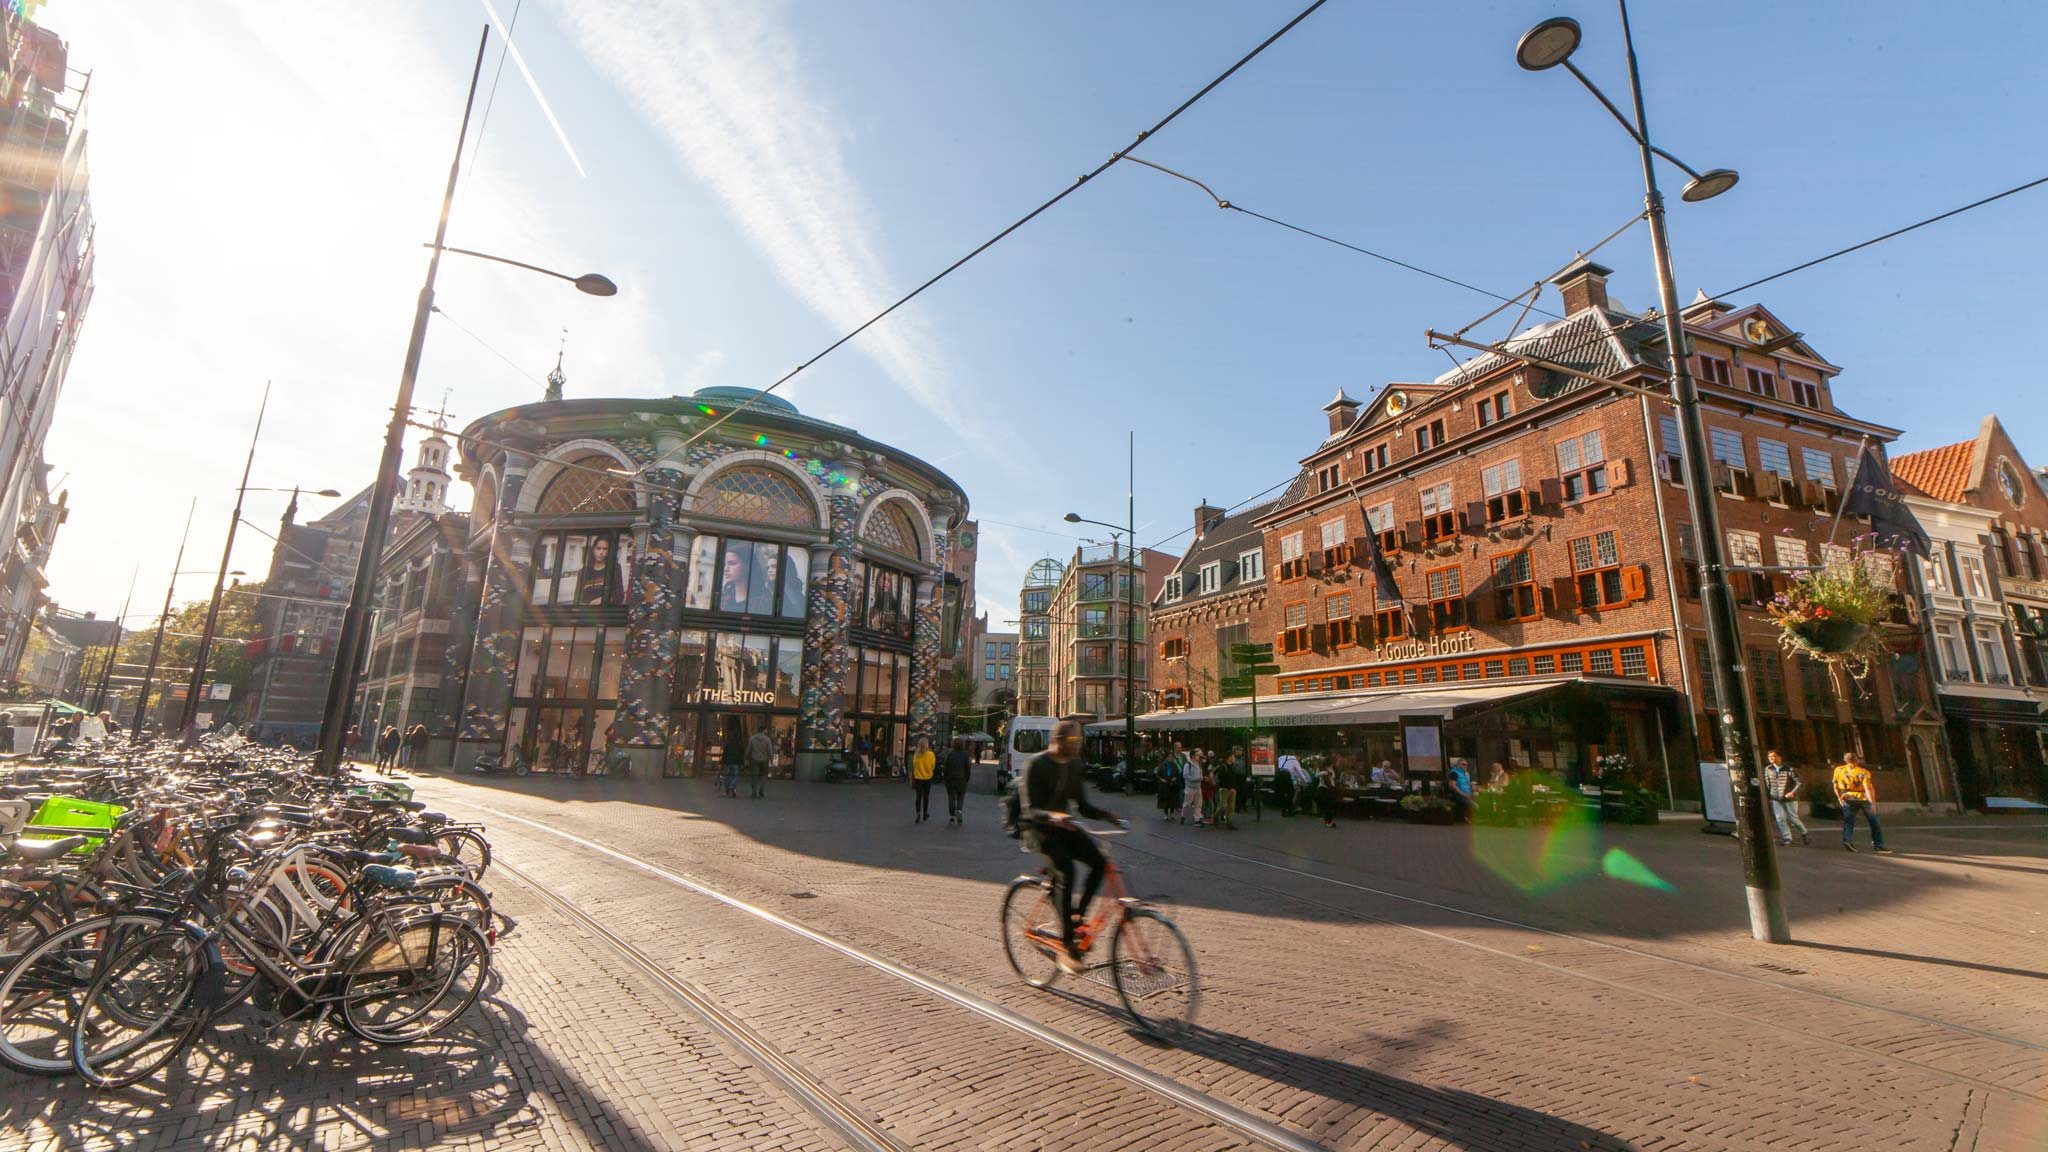 A street scene in The Hague city centre